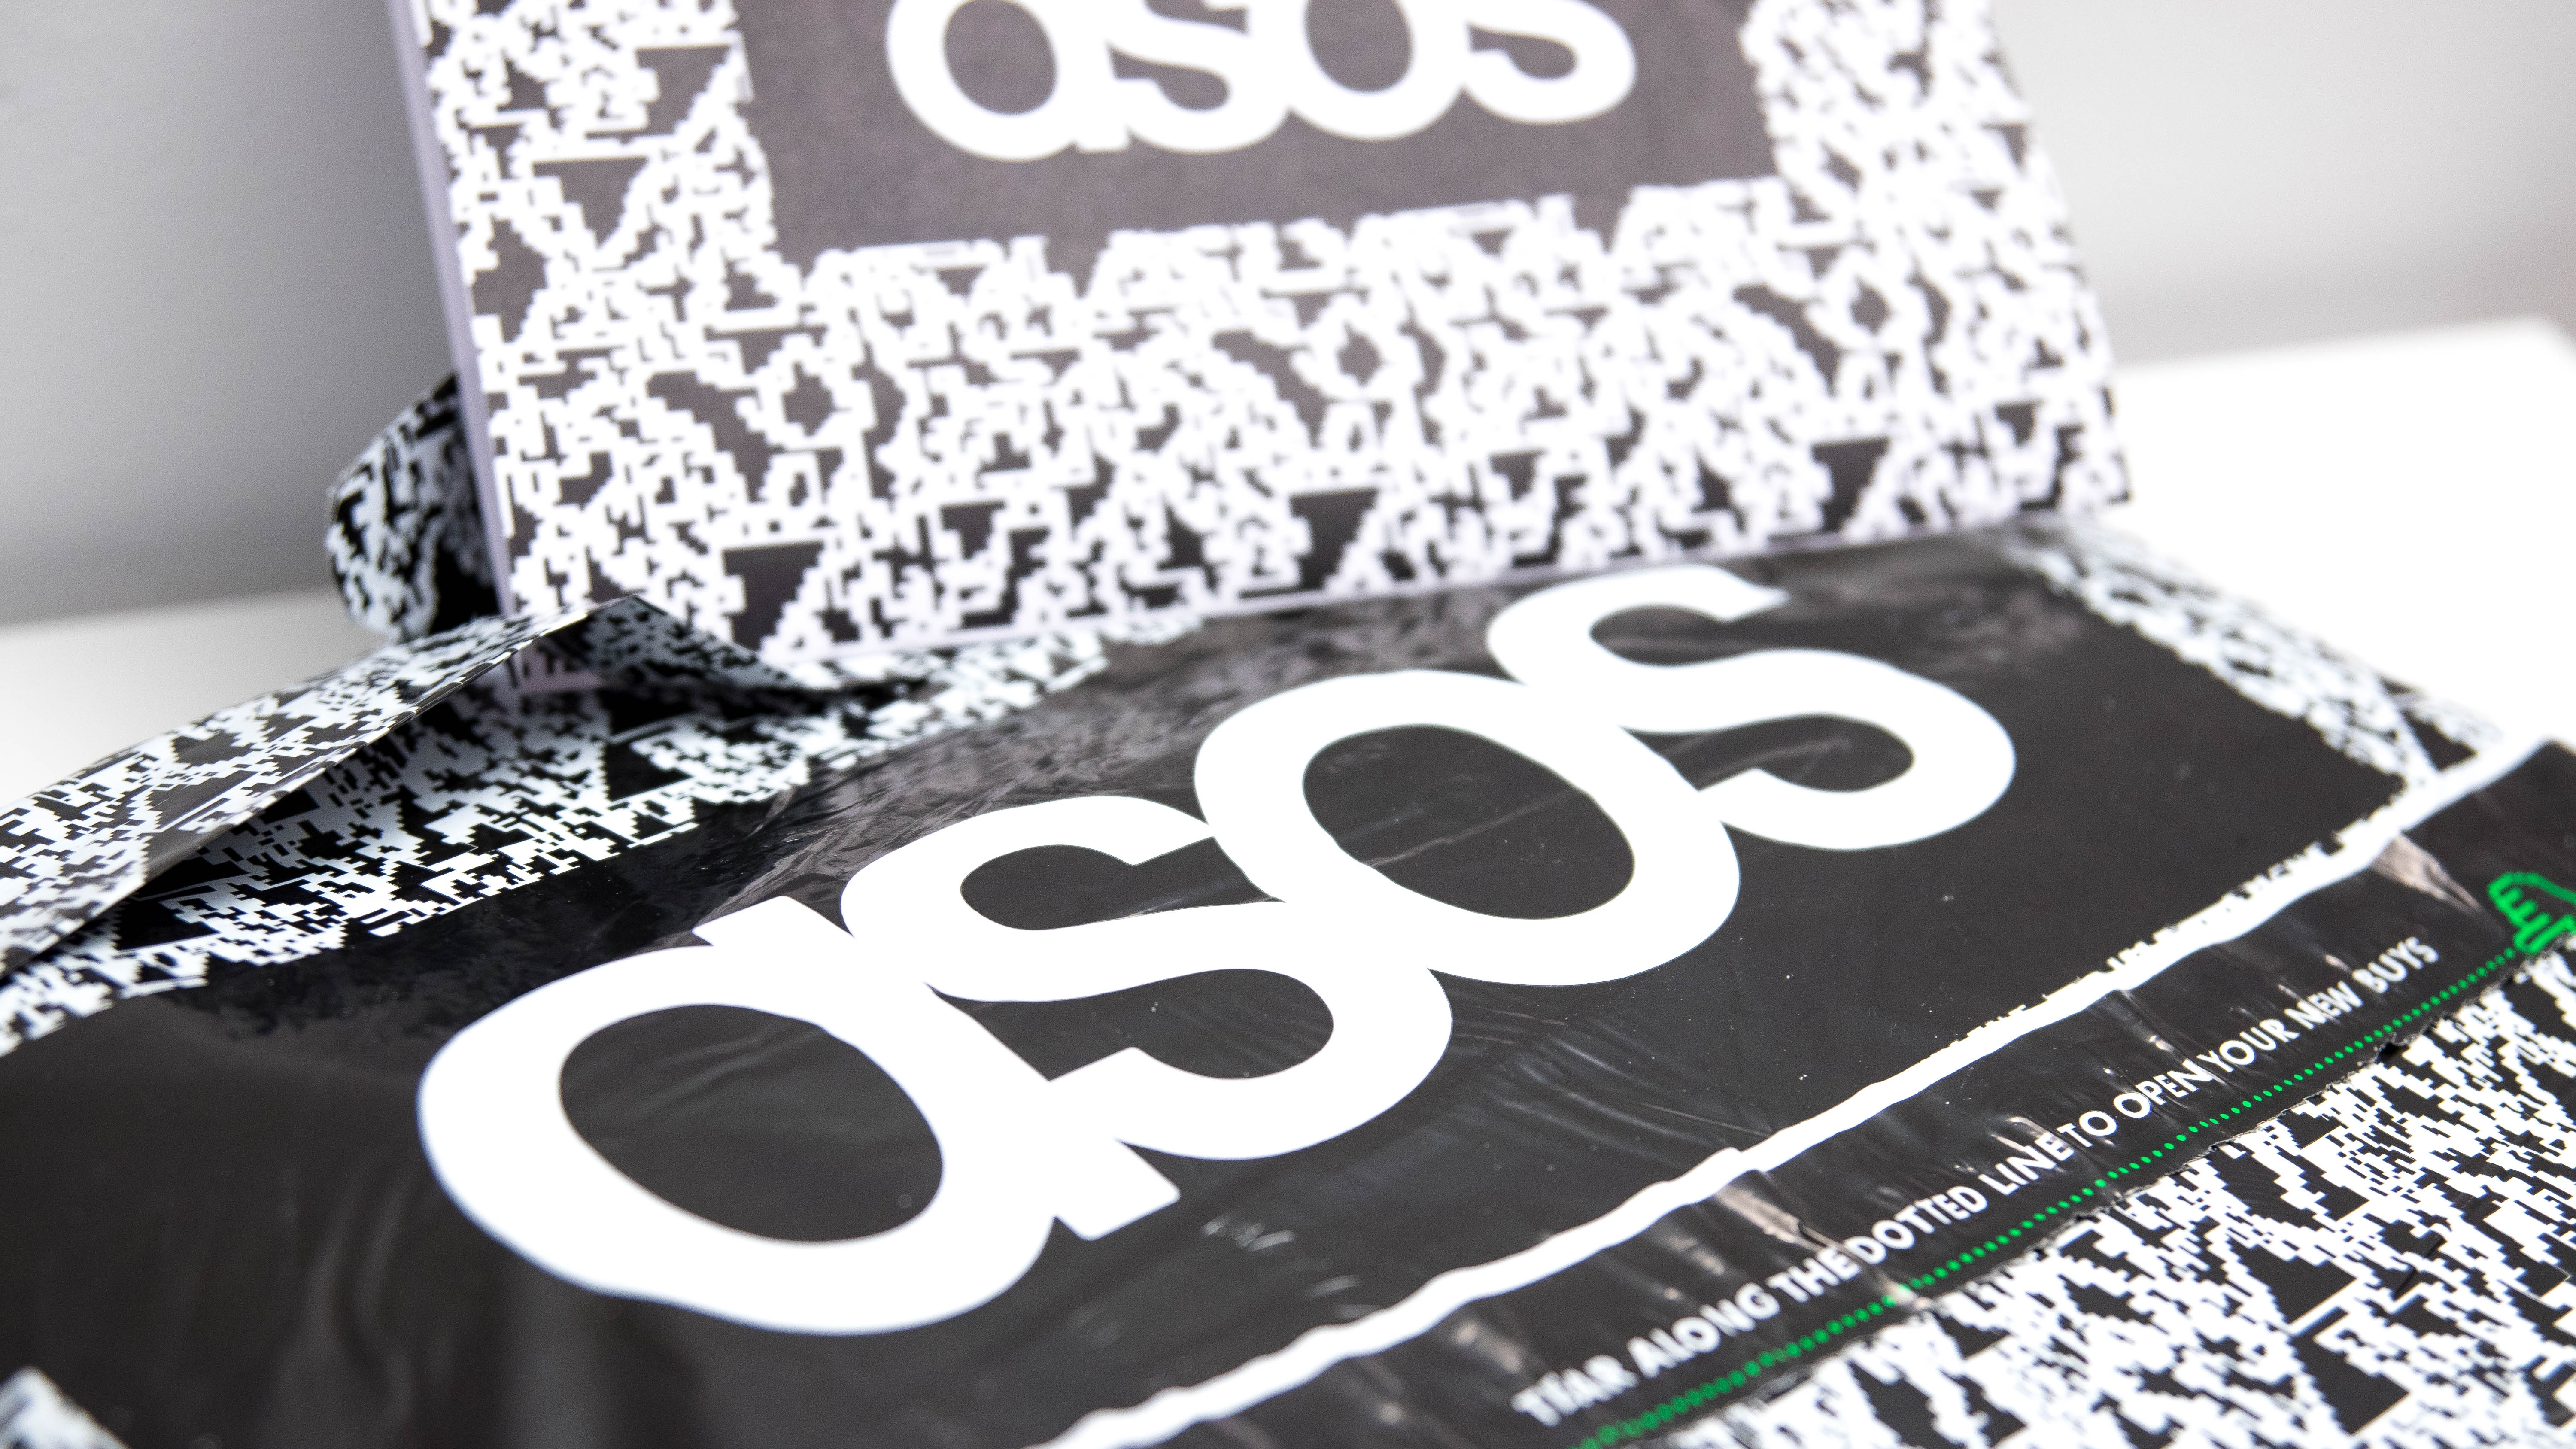 c86b6d358cd3 Asos cracking down on 'wear and return' customers – your rights